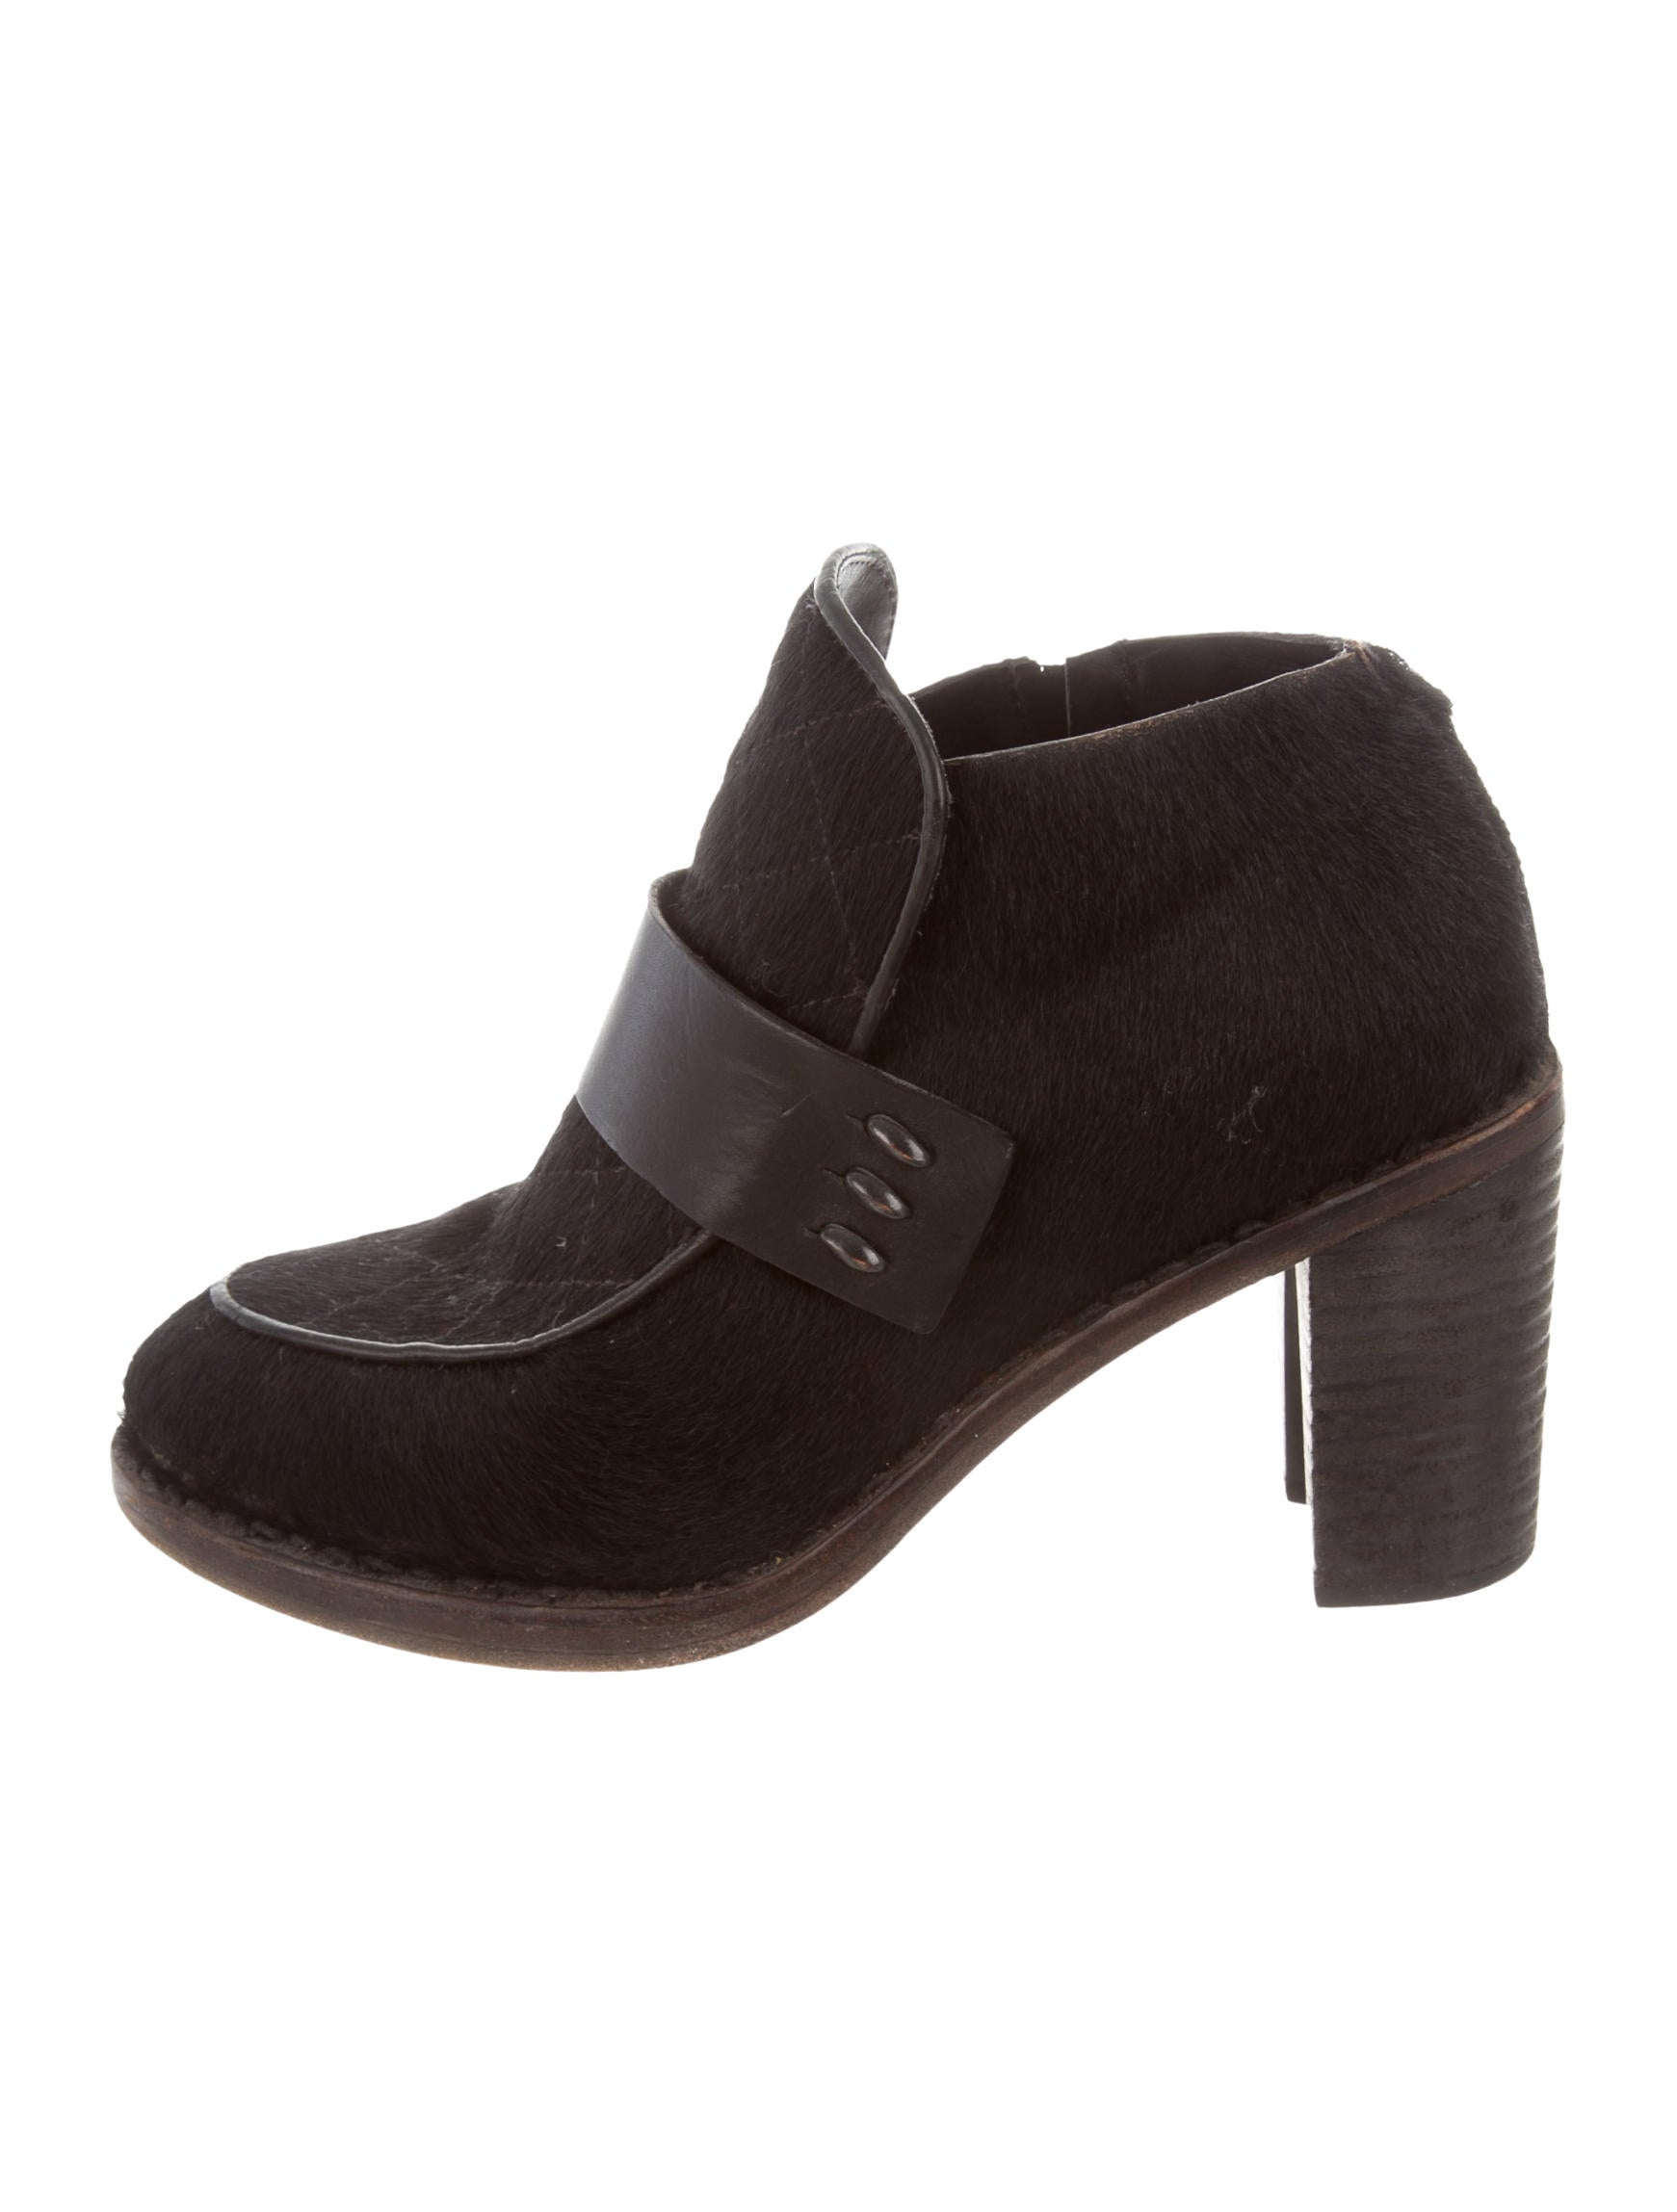 amazon footaction Rag & Bone Ponyhair Leather-Trimmed Ankle Boots buy cheap finishline NYunkByh